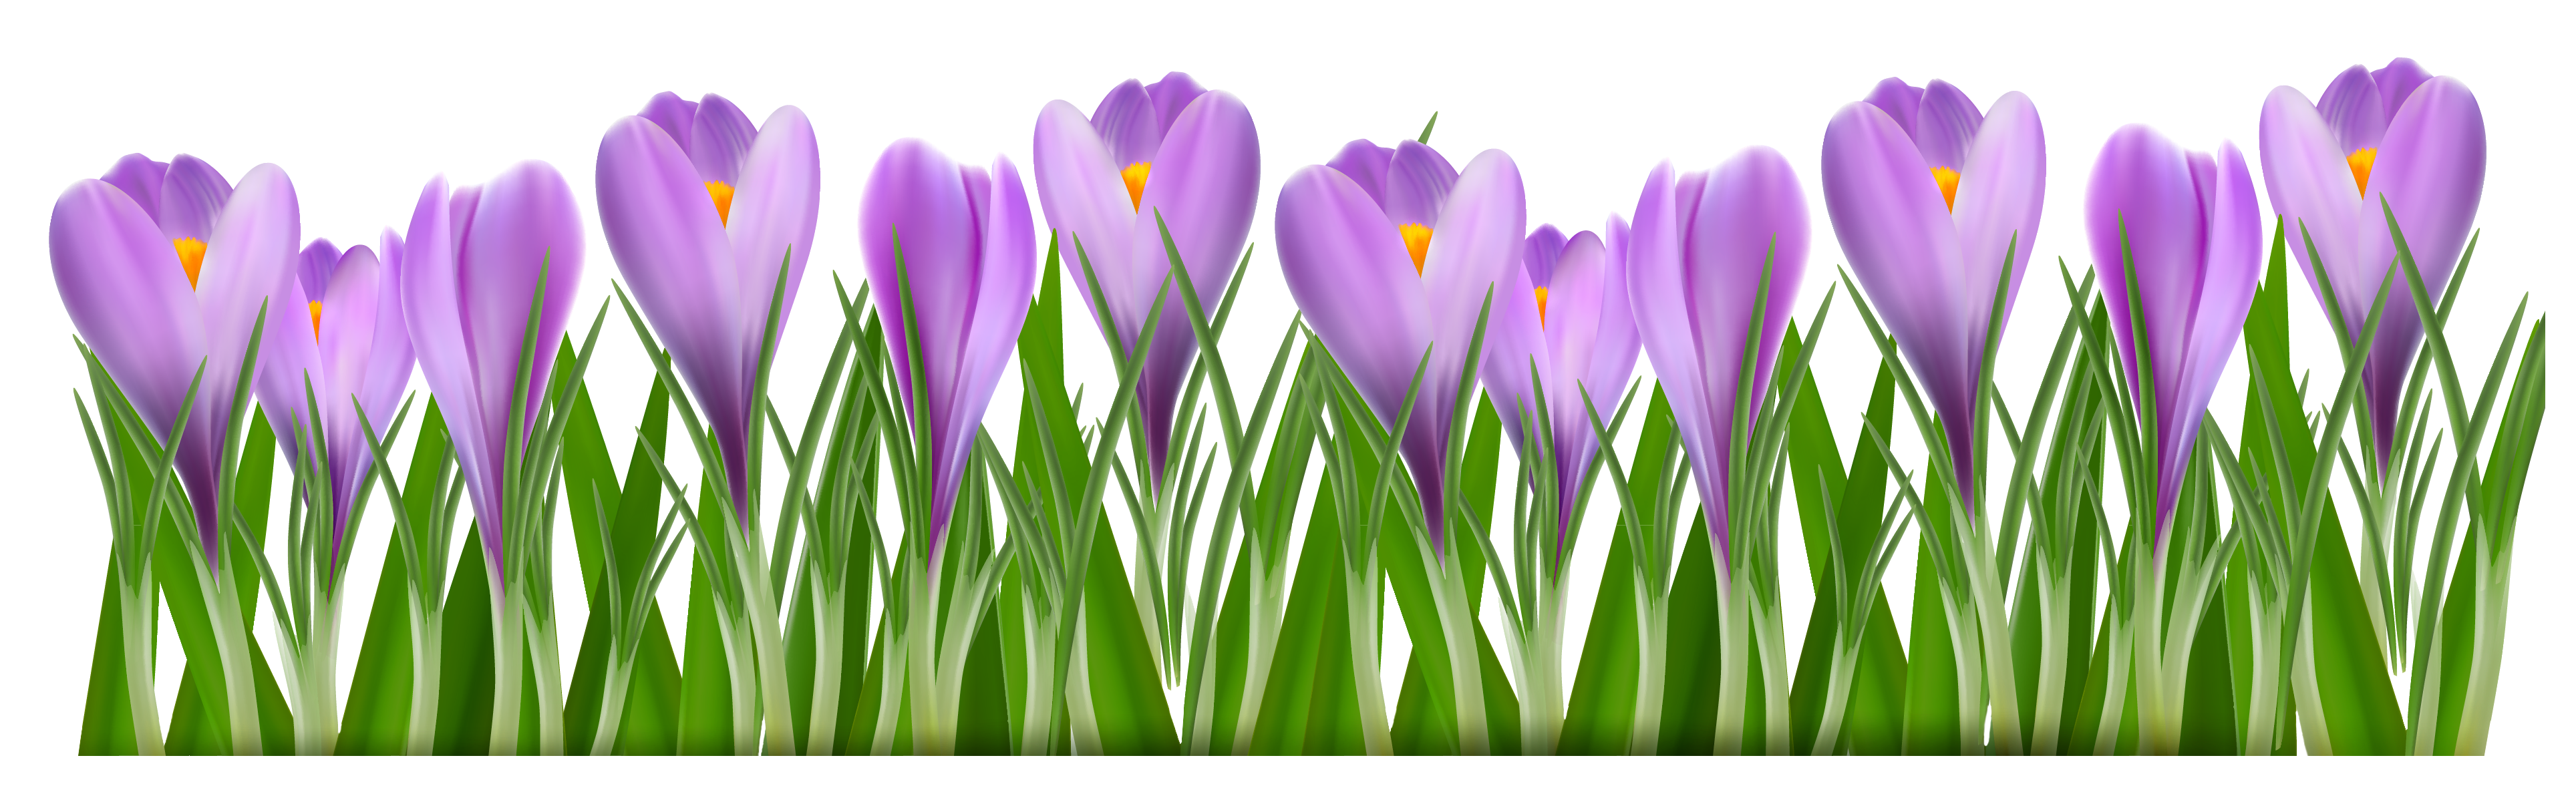 Free Crocus Flower Cliparts, Download Free Clip Art, Free.